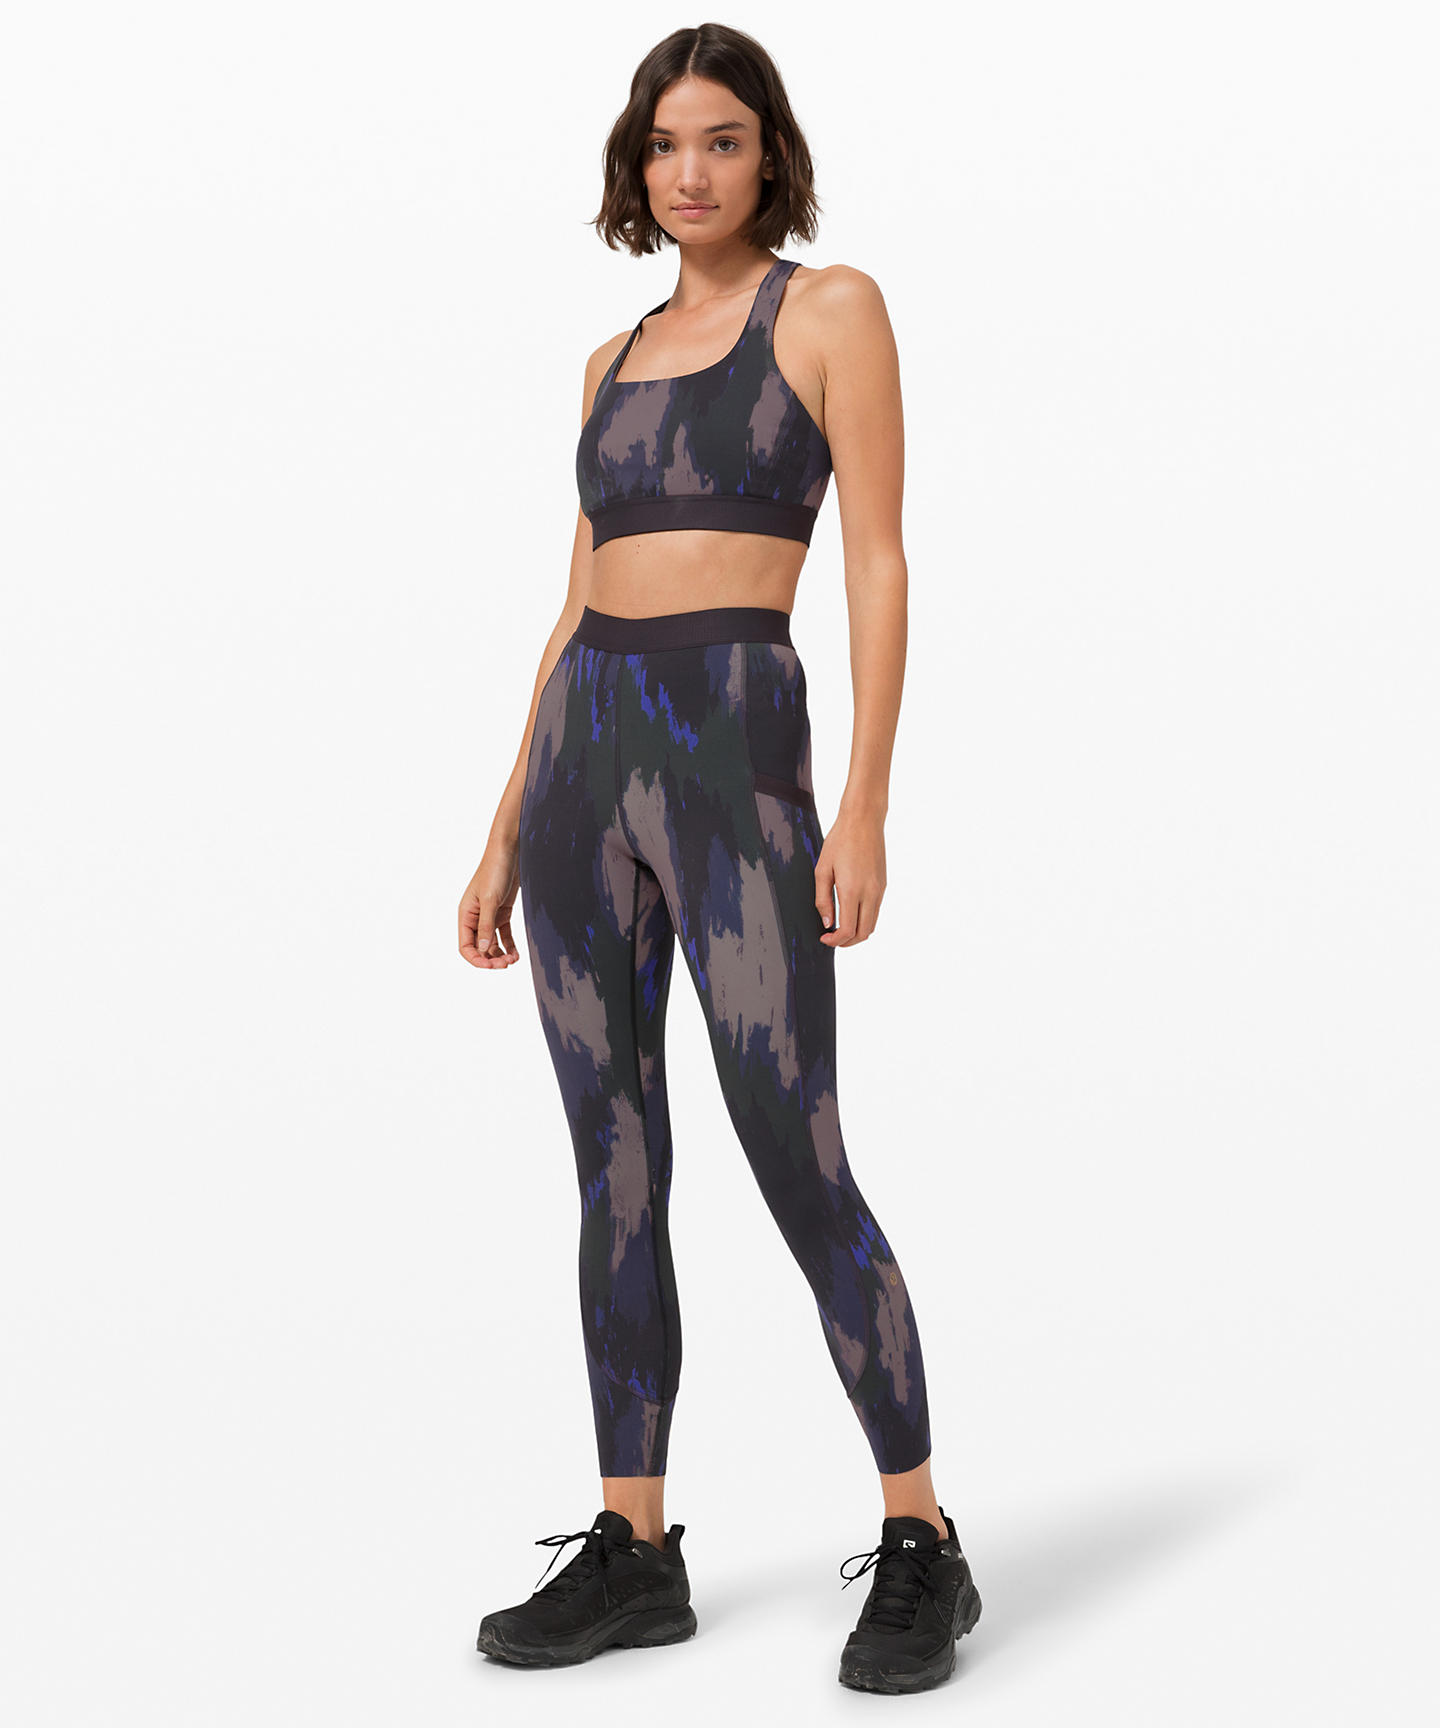 "Take The Moment Tight 25"" lululemon x Robert Geller, Lululemon X Robert Geller"